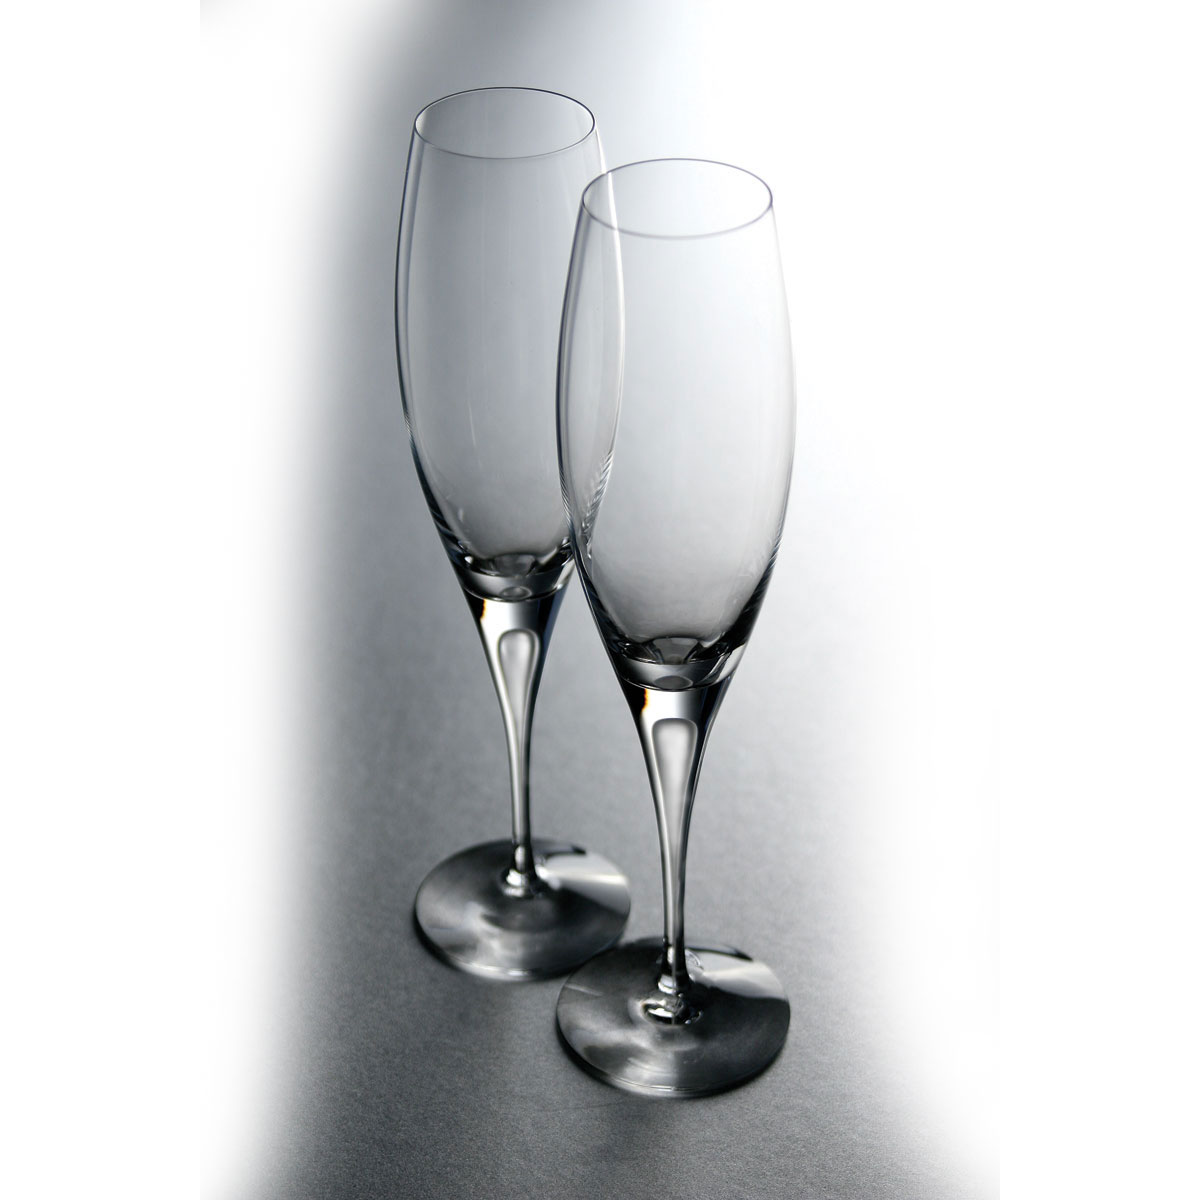 Orrefors Crystal, Intermezzo Satin Crystal Champagne, Single